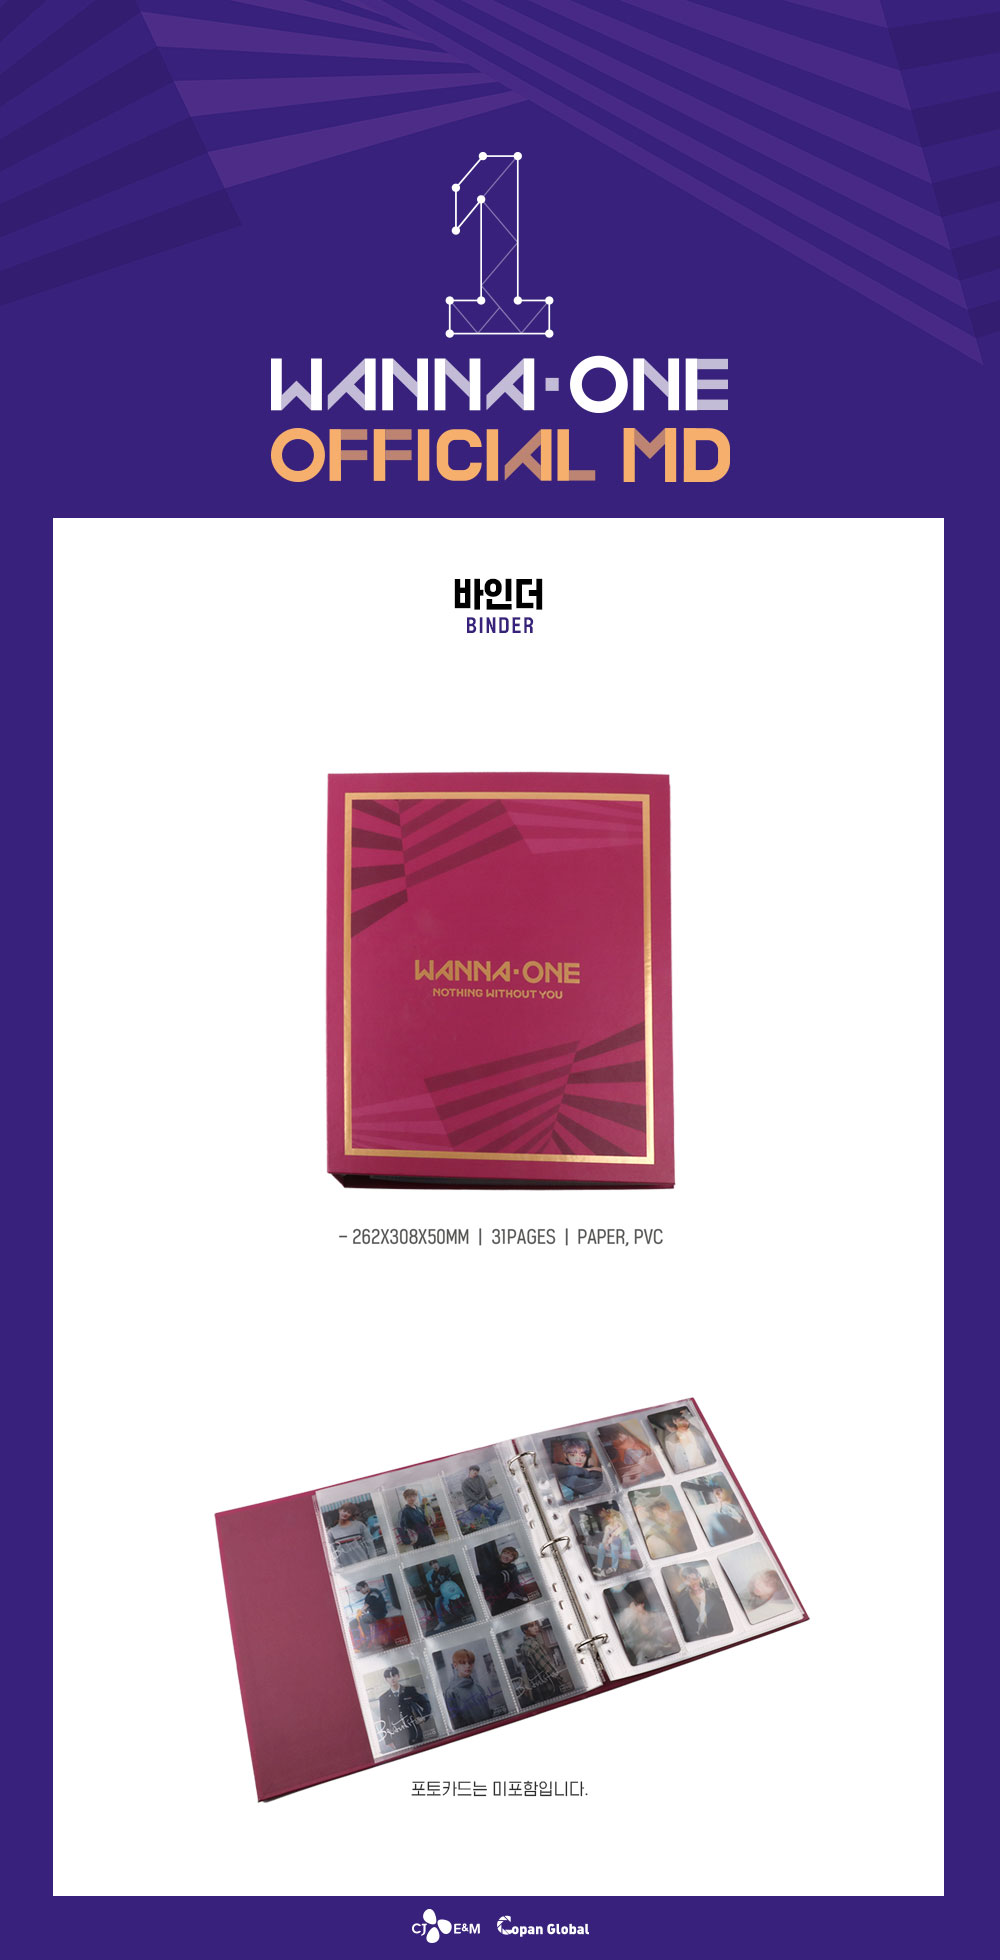 WANNA ONE - BINDER [Official MD Goods]